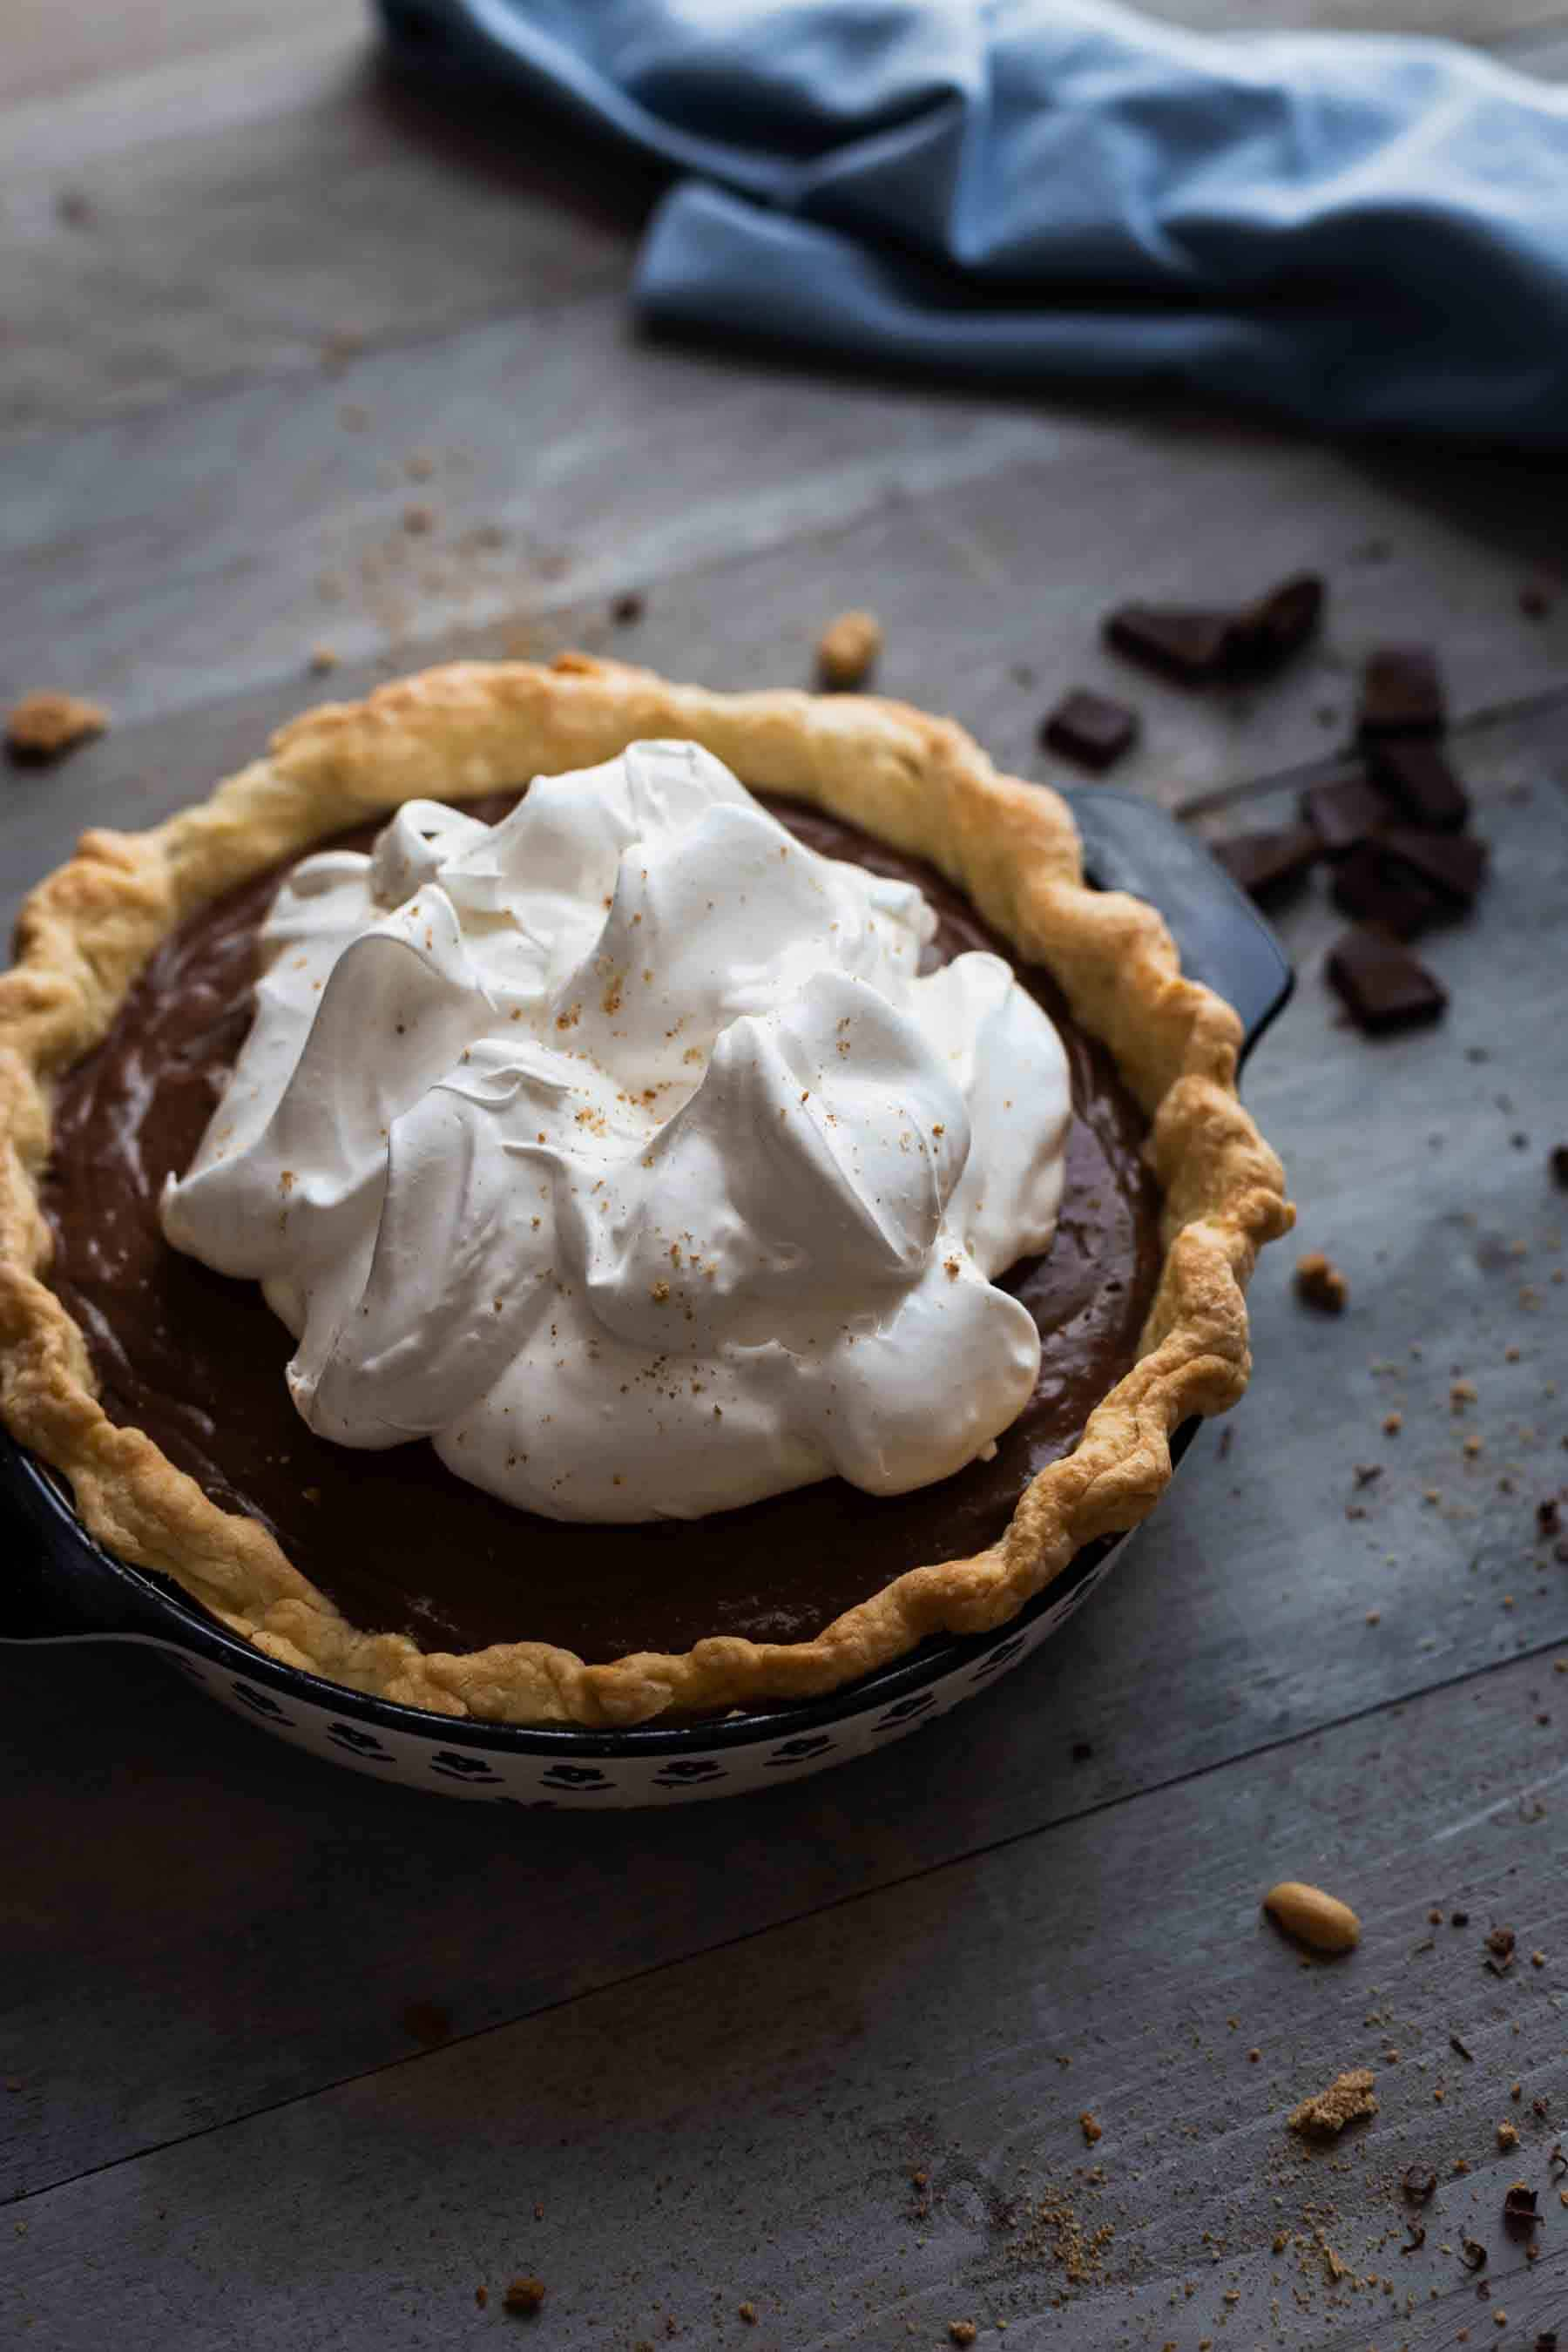 homemade chocolate cream pie with whipped cream on top